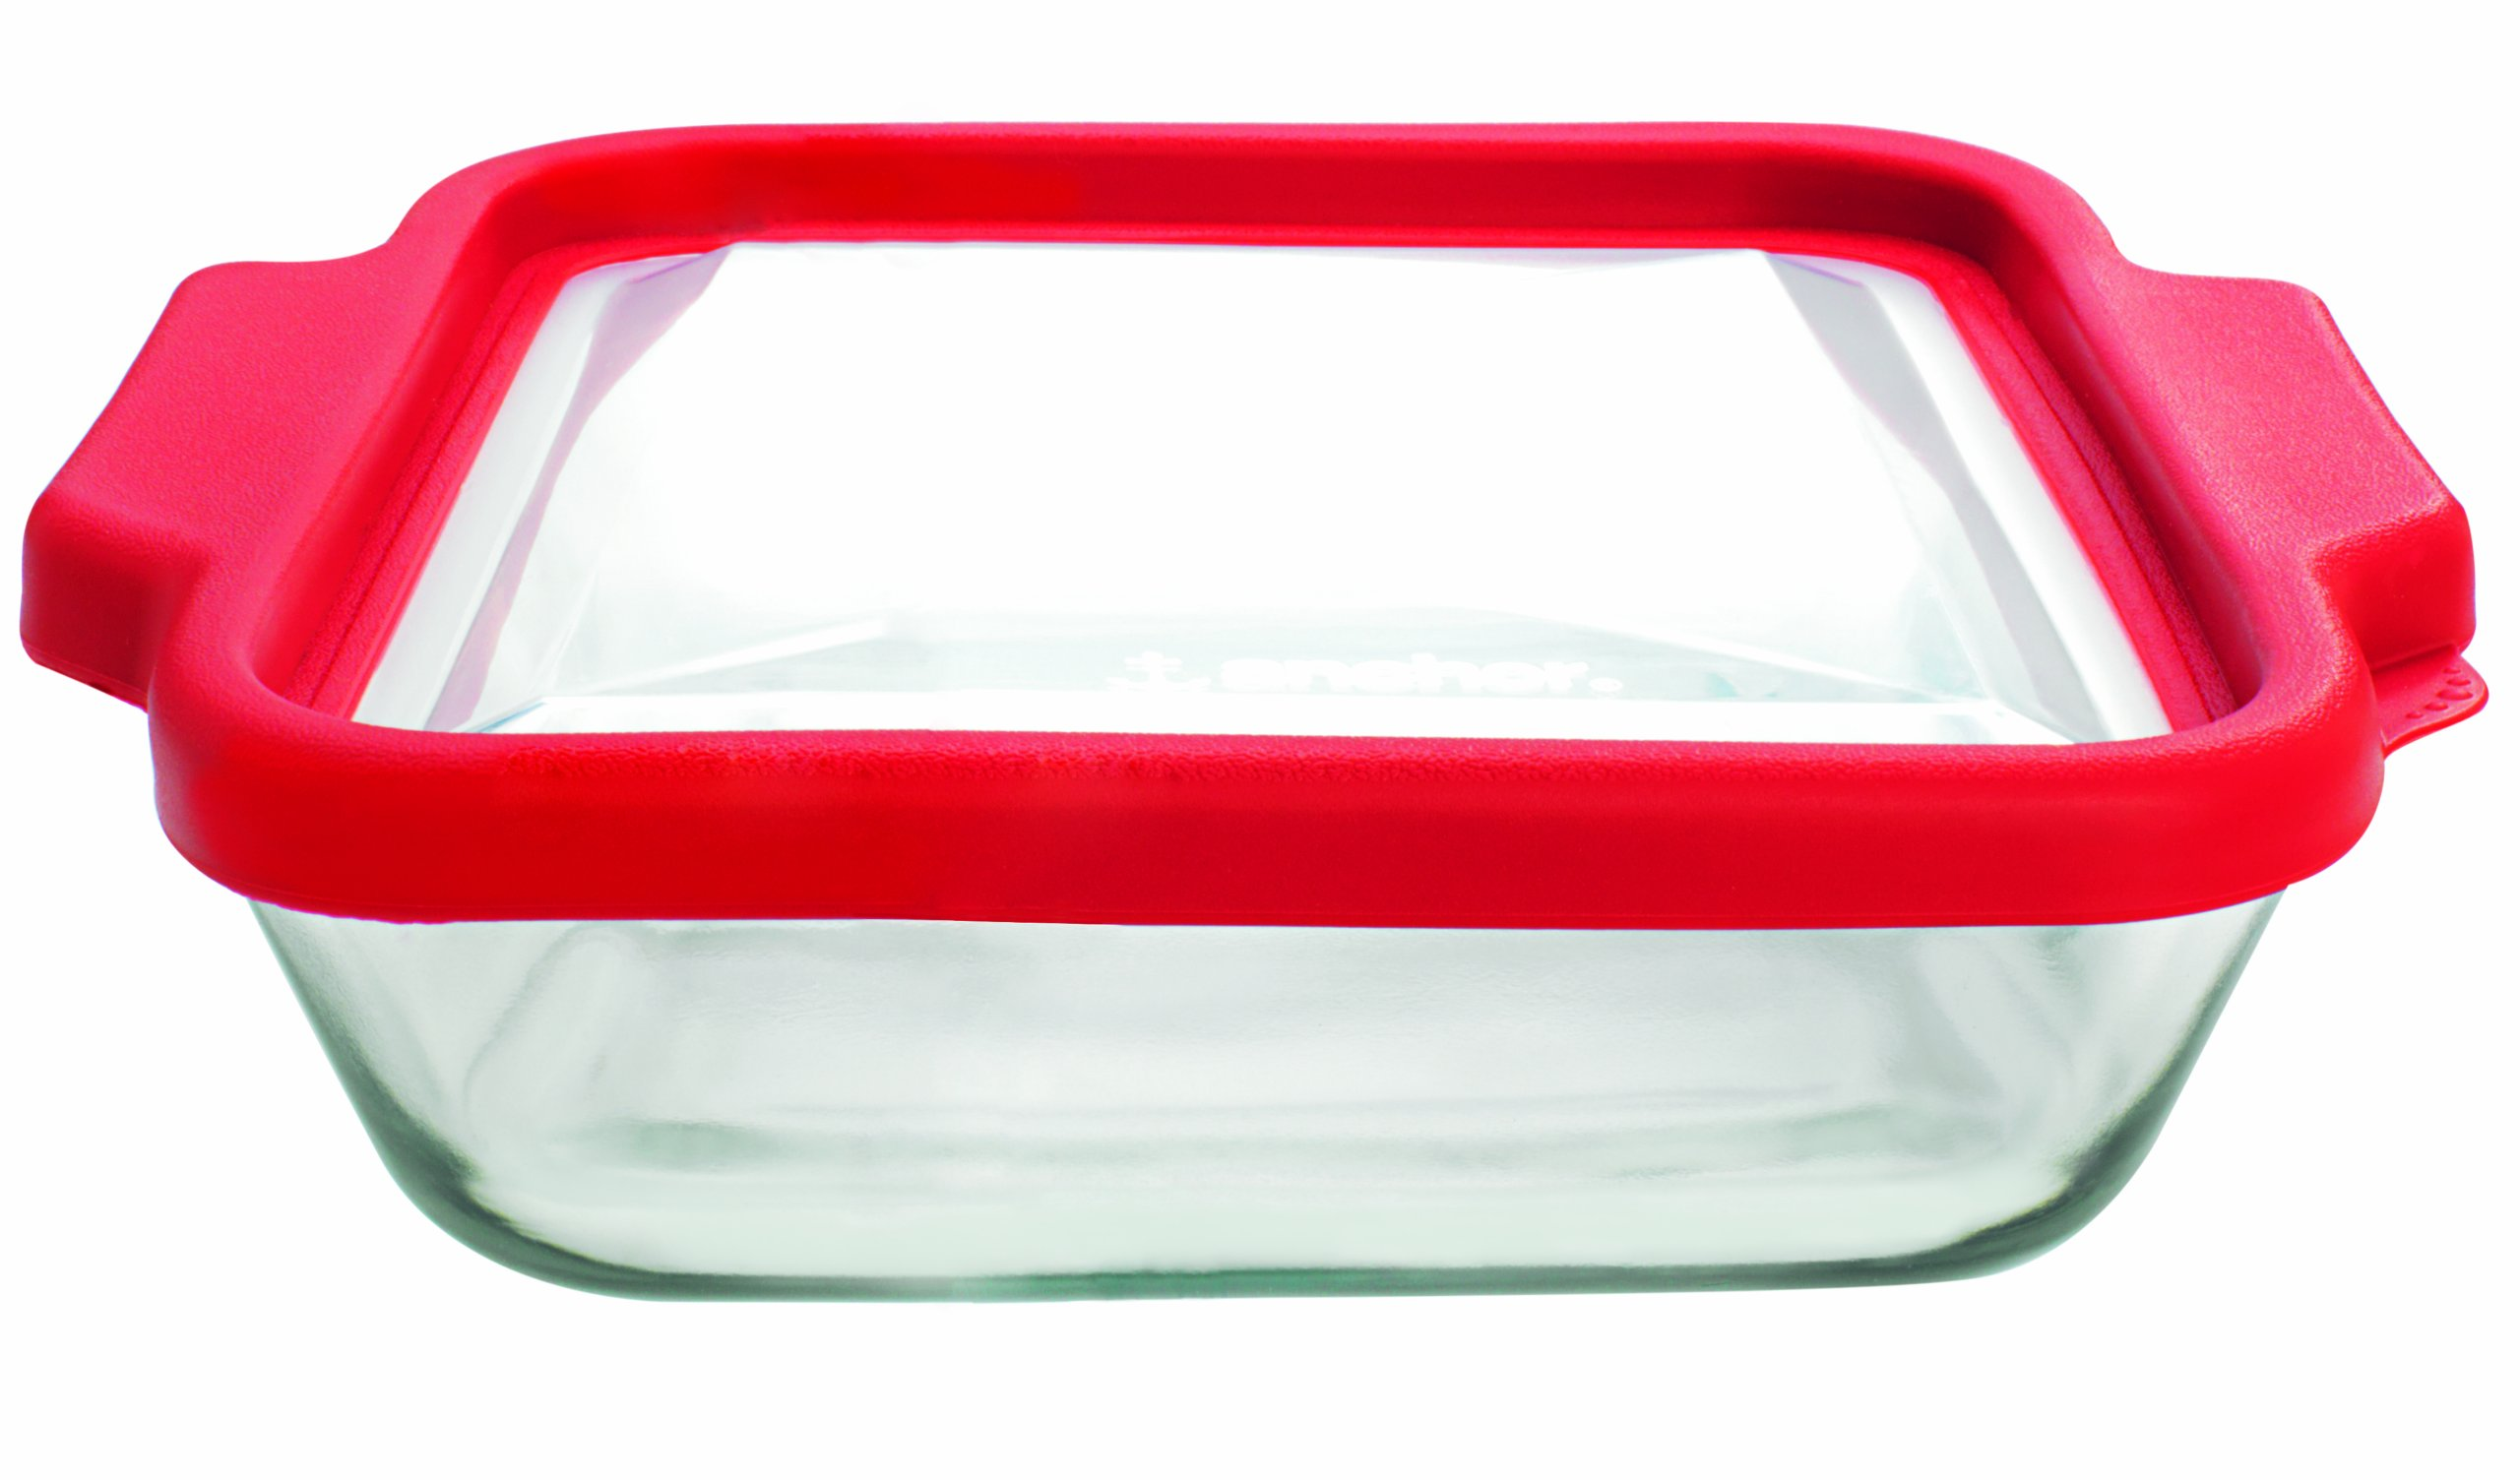 Anchor Hocking 8-InchSquare Glass Baking Dish with Cherry TrueFit Lid by Anchor Hocking